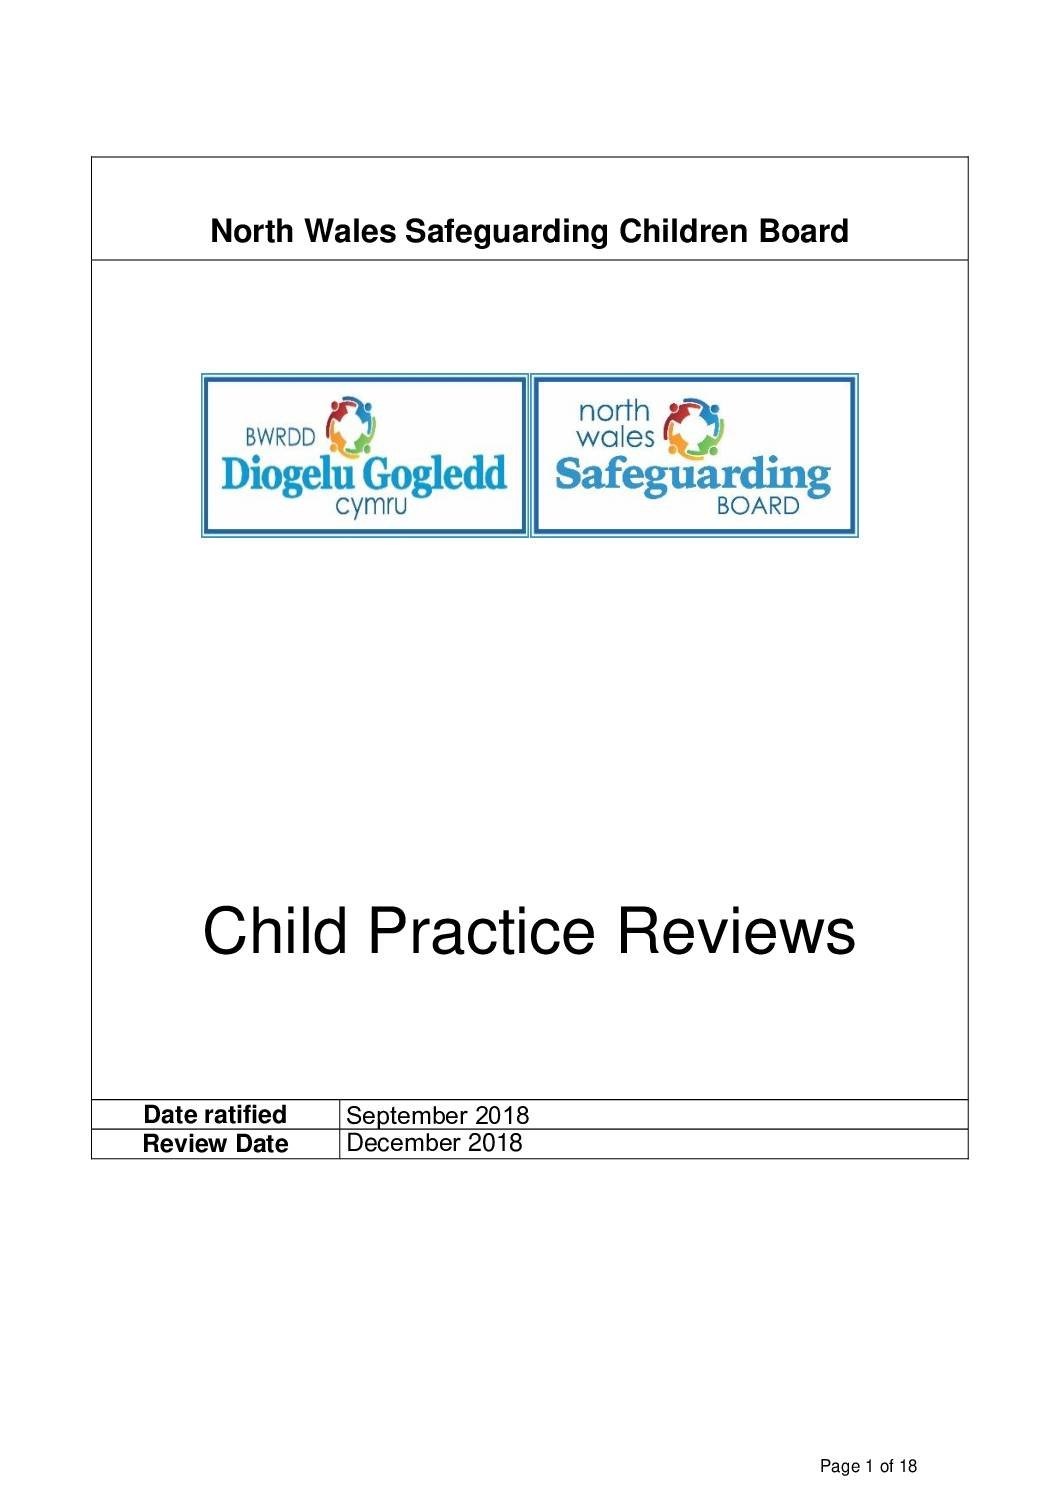 Child Practice Review Protocol